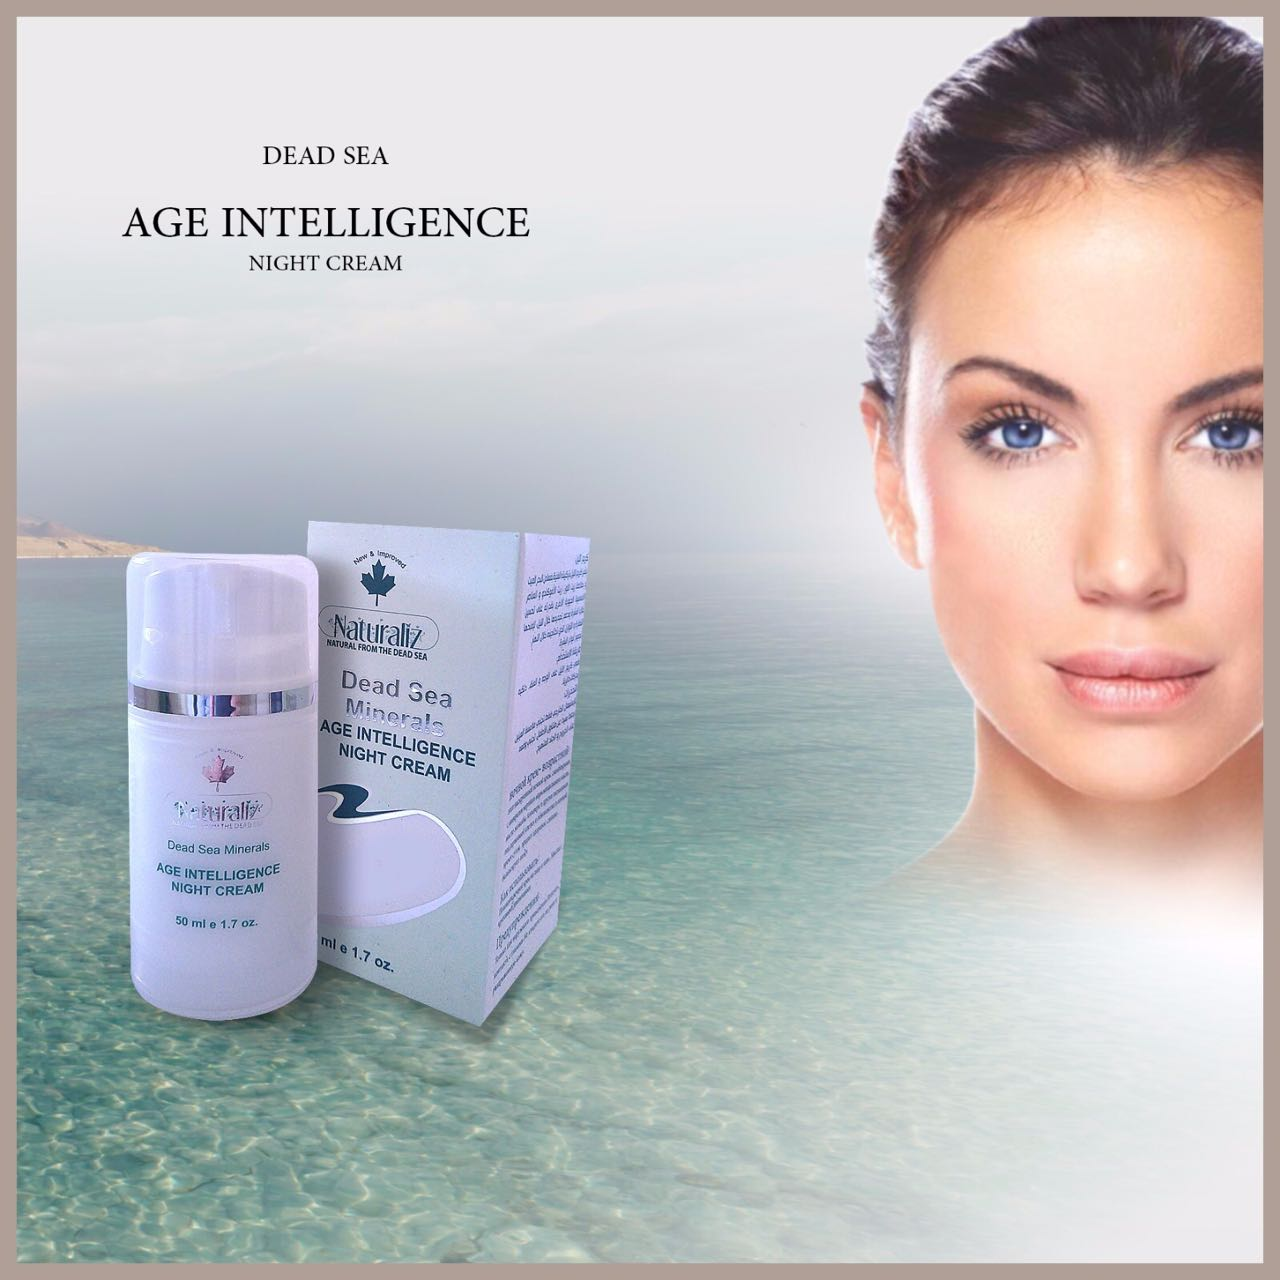 Age Intelligence Night Cream